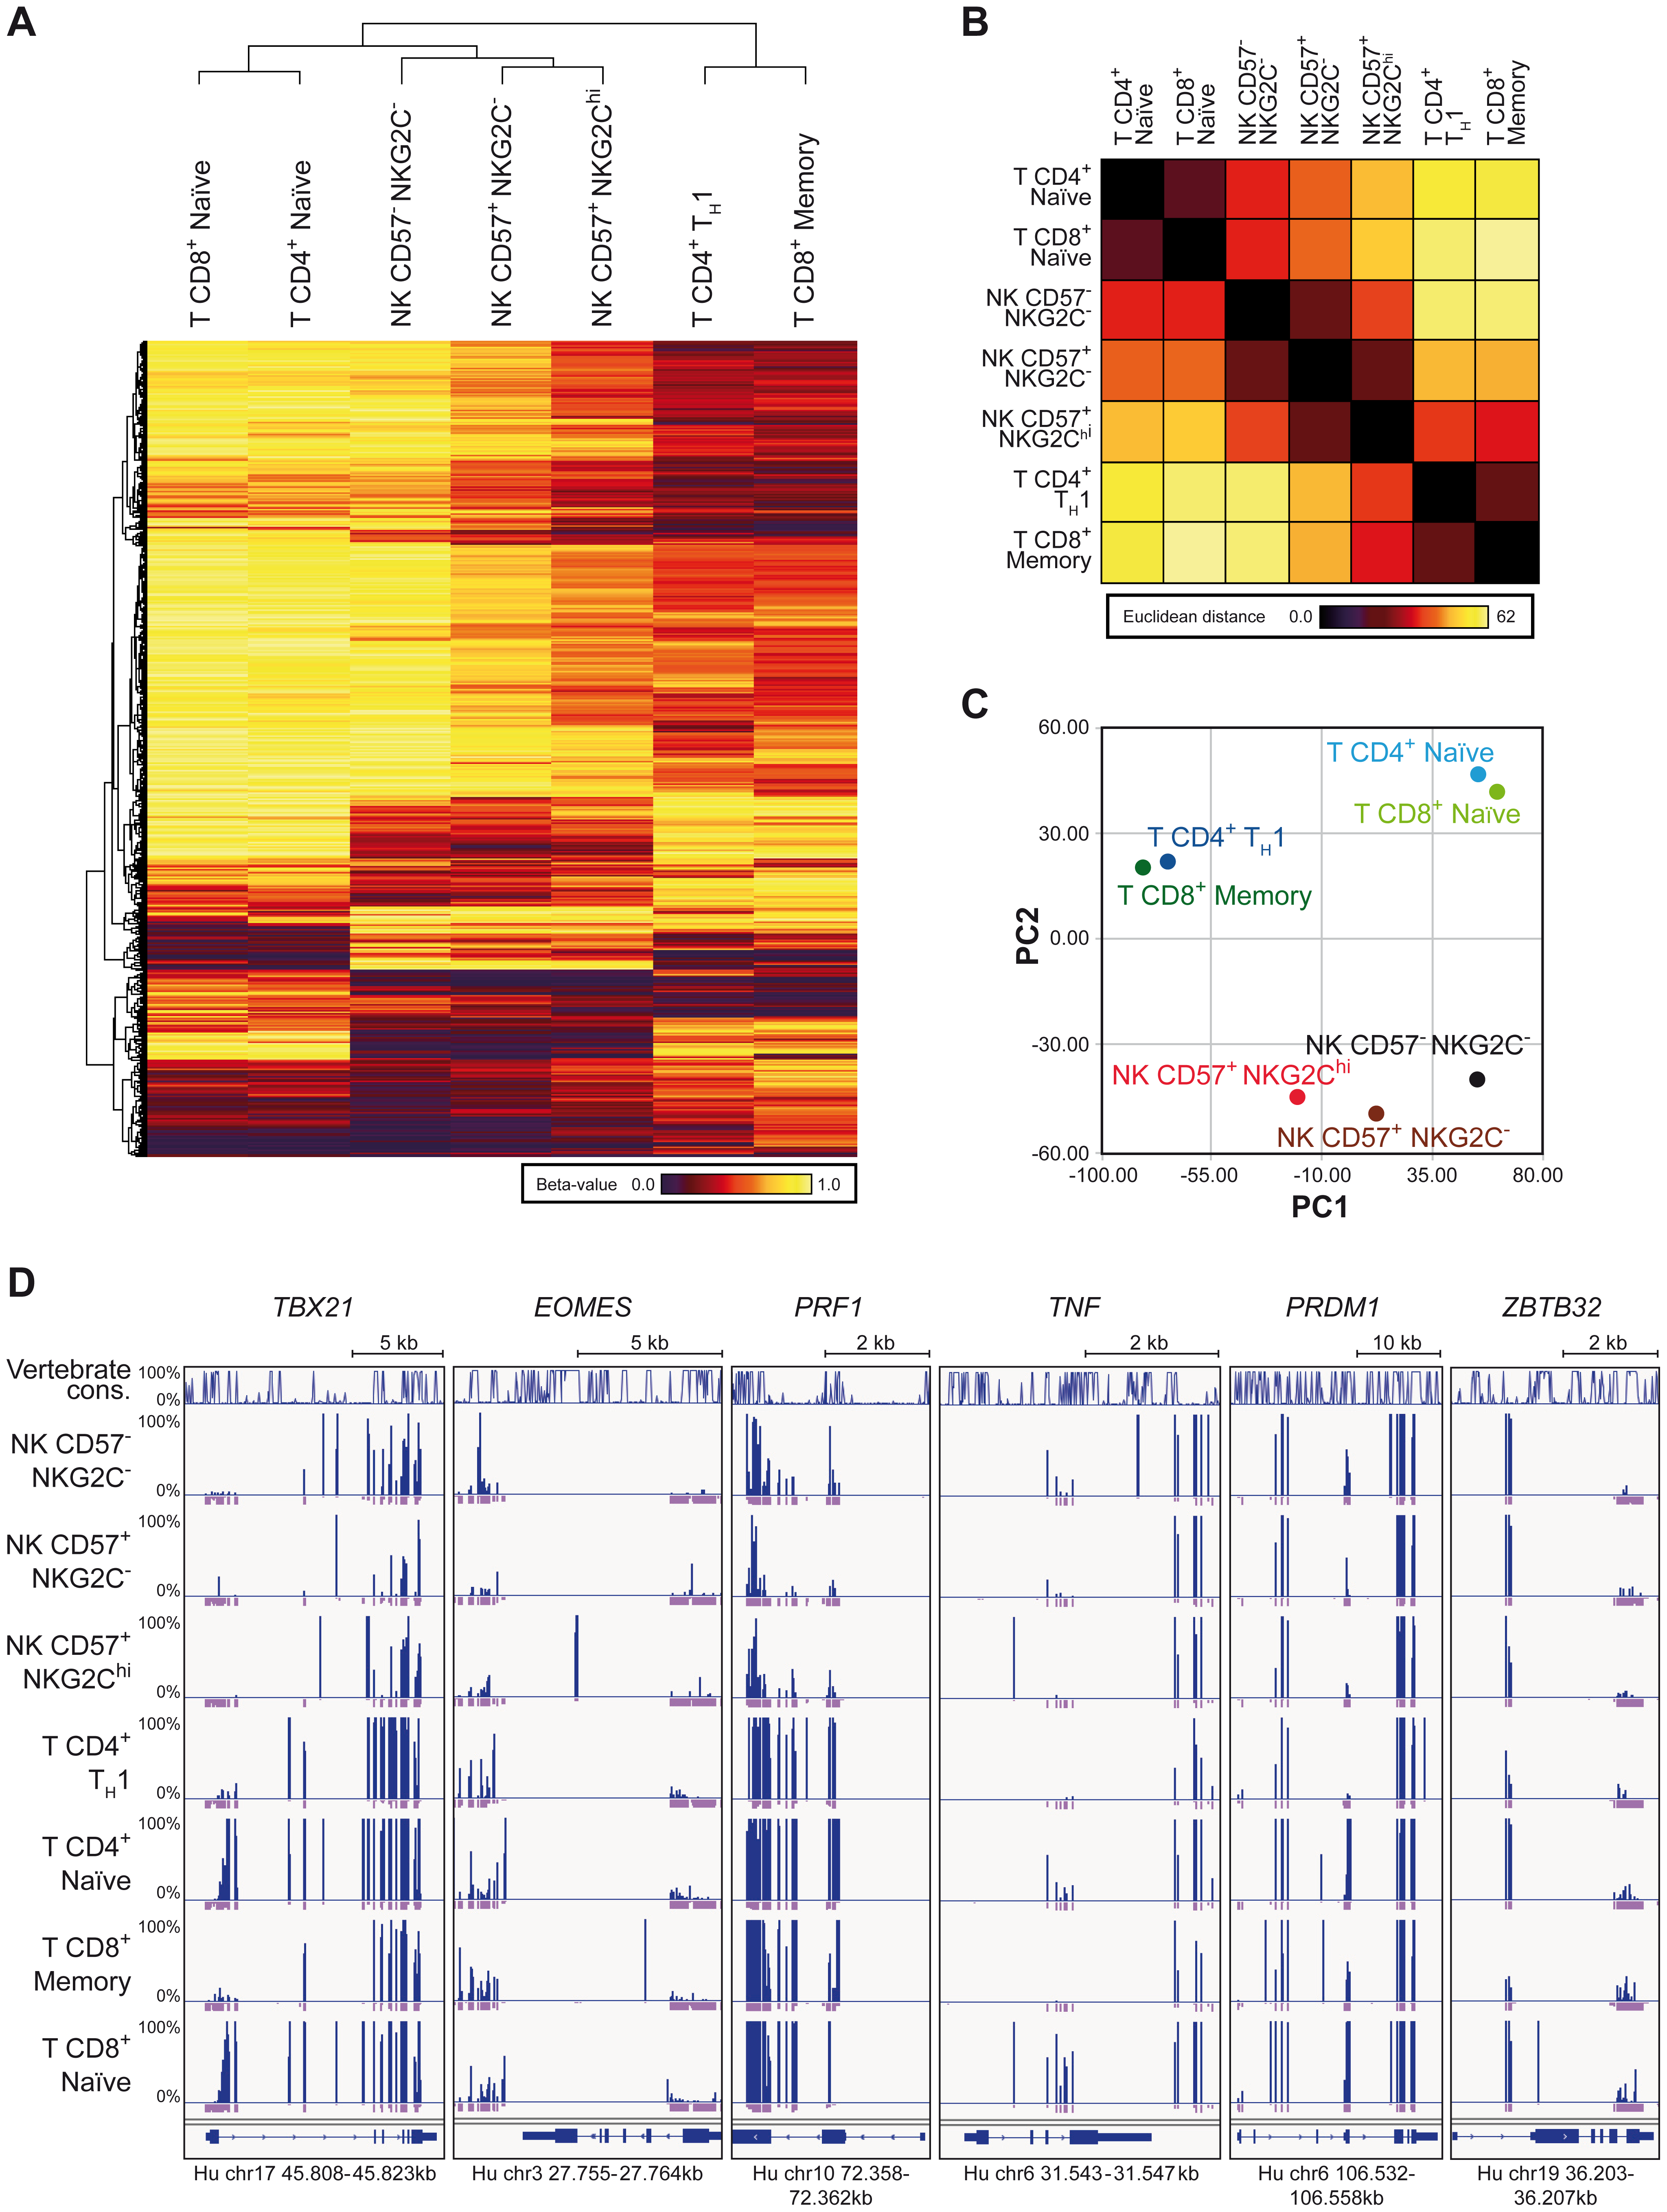 RRBS-based global methylation analysis of NK cell and T cell subsets.